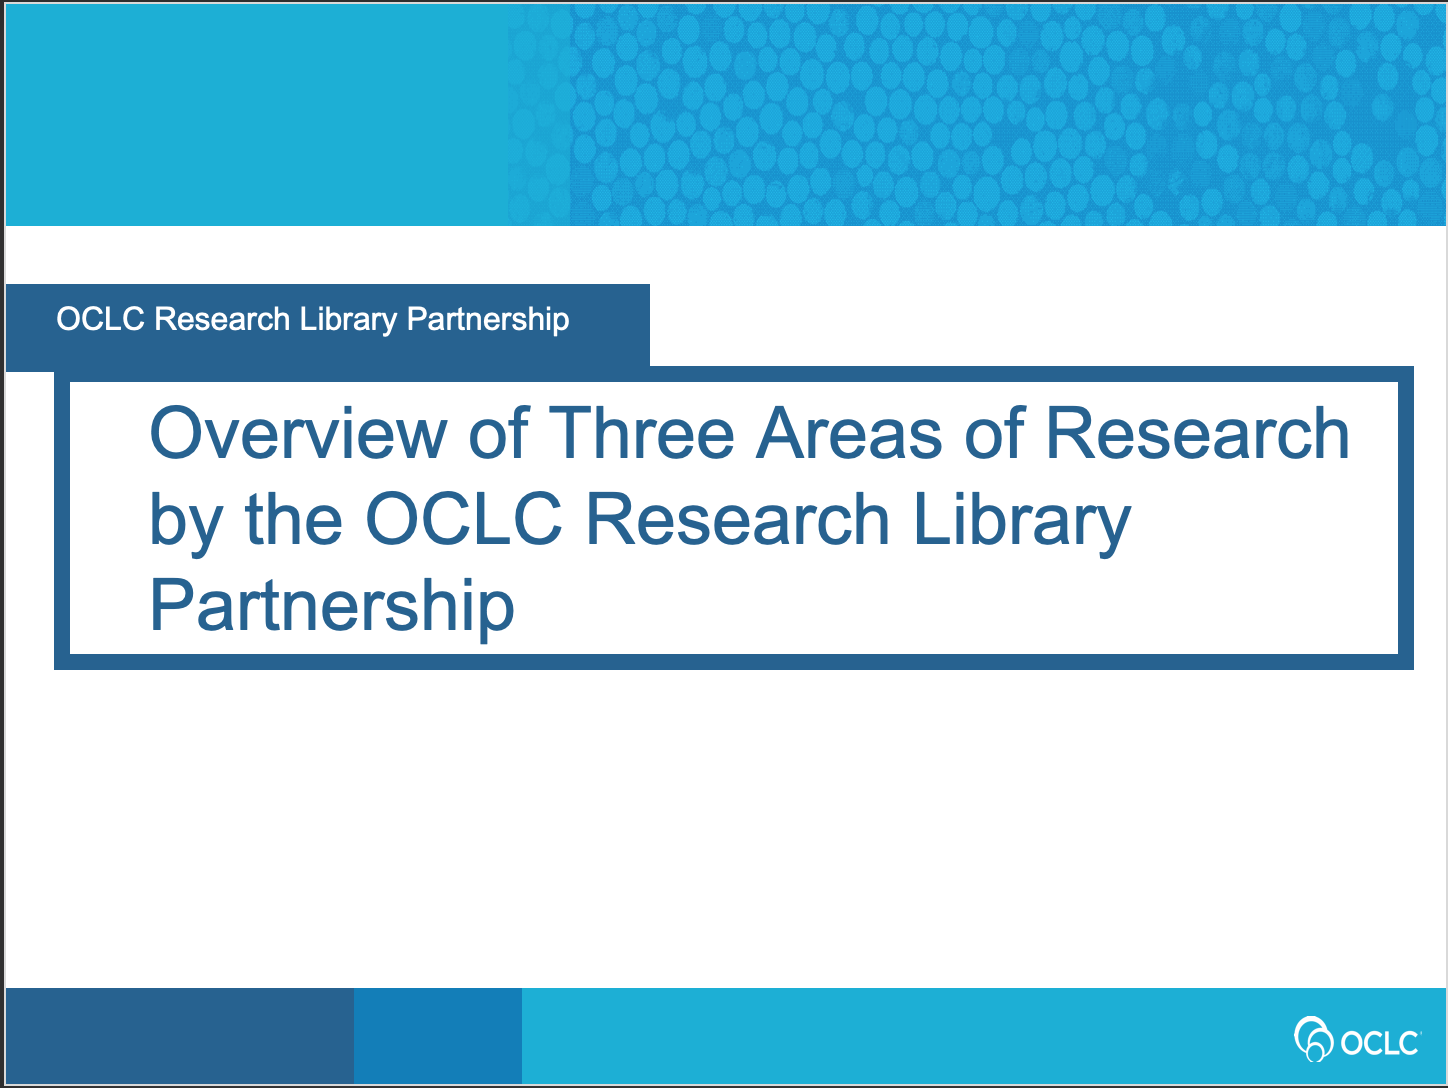 Overview of Three Areas of Research